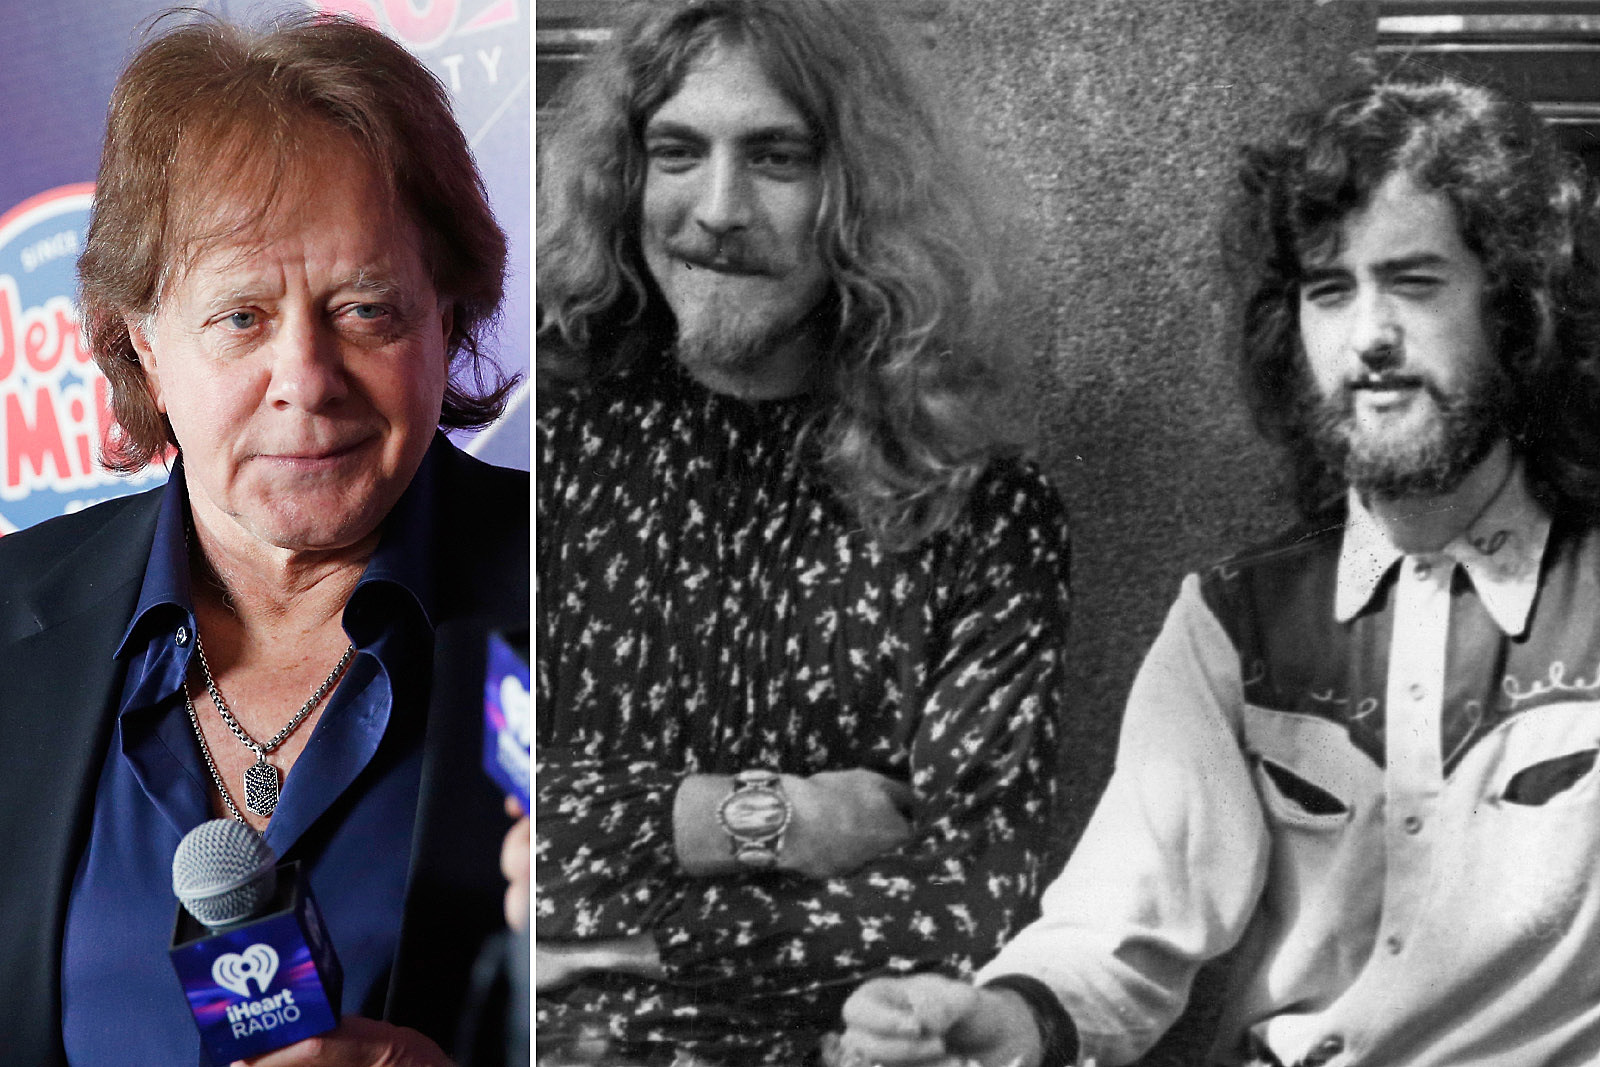 Eddie Money Saw Led Zeppelin's First and Last U.S. Shows